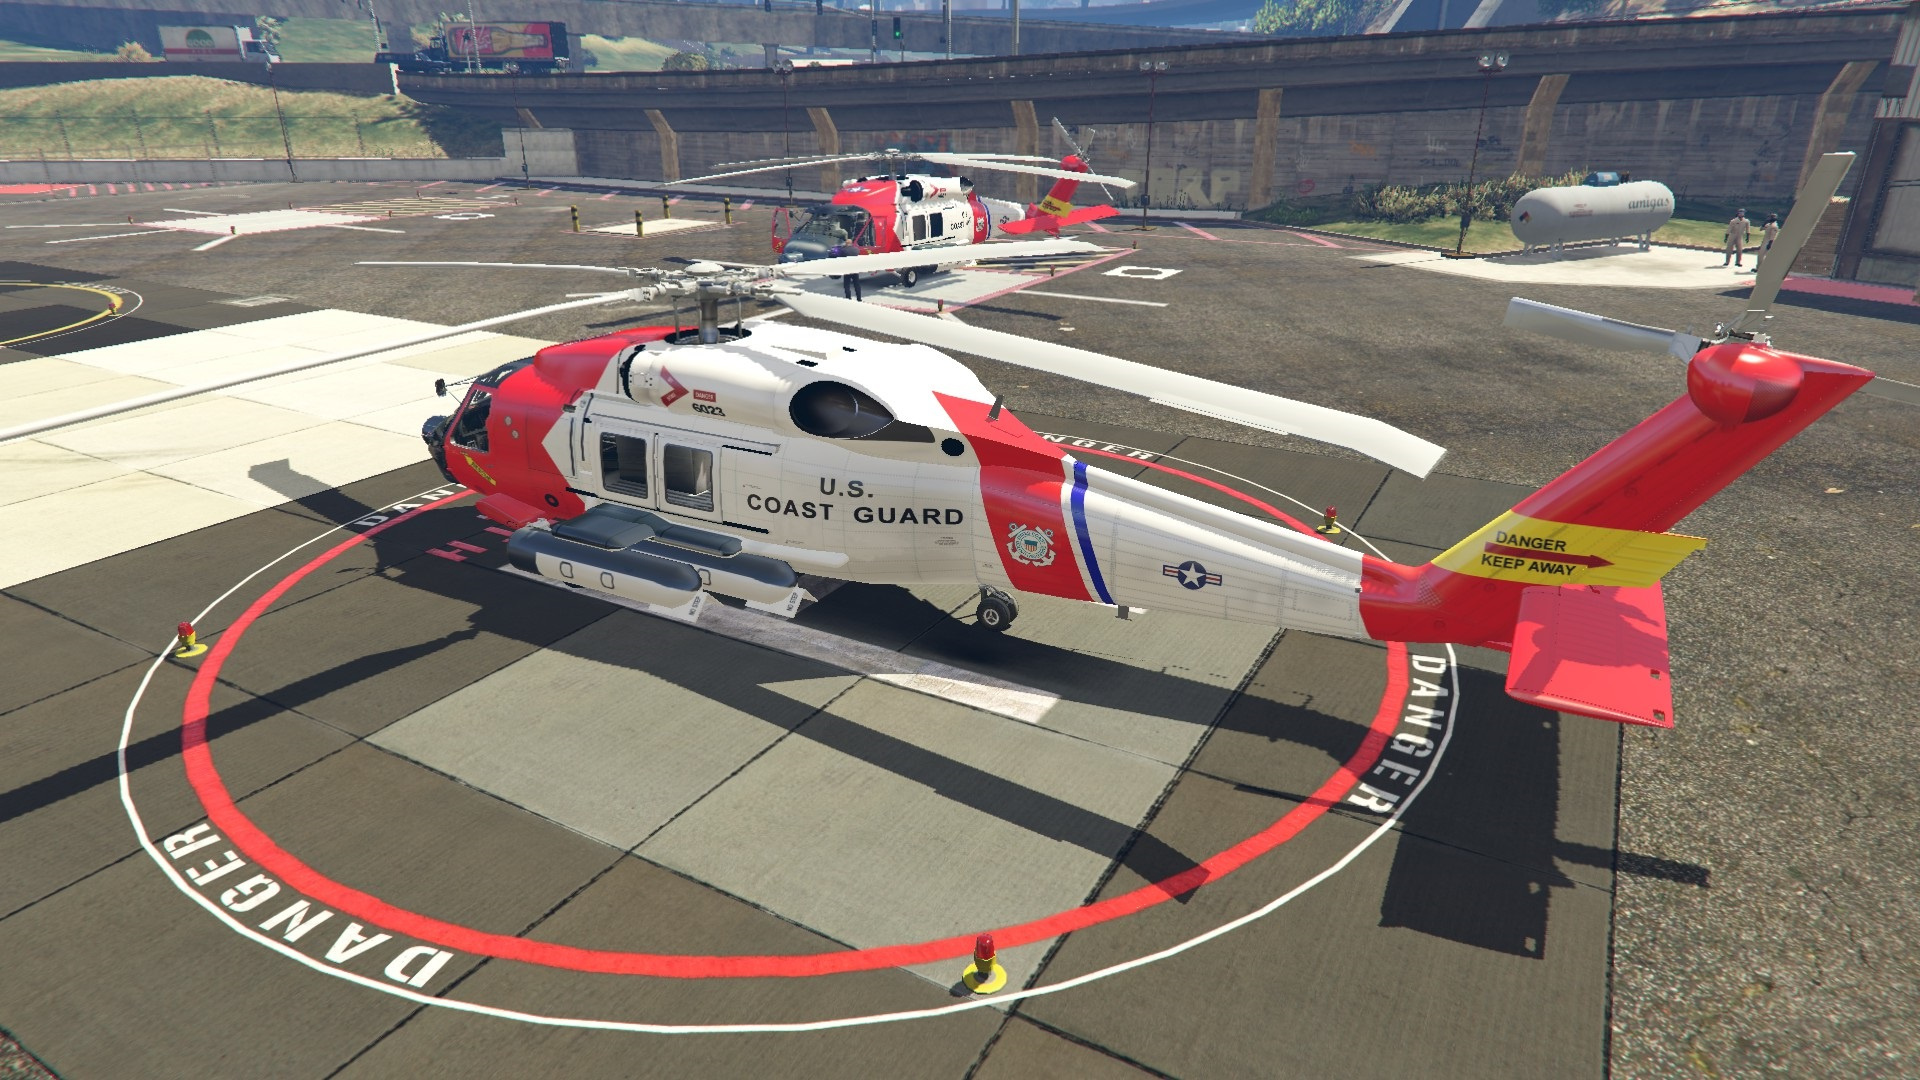 heli fire with Mh 60t Jayhawk Us Coast Guard on Helicopter Hero Saved 30 Soldiers Flying Handed Awarded RAFs Highest Honours besides File A fire helicopter with helicopter bucket furthermore Ch 47 Chinook Helicopter Road Transport in addition dieselsellerz together with Mar A Lago Helipad.